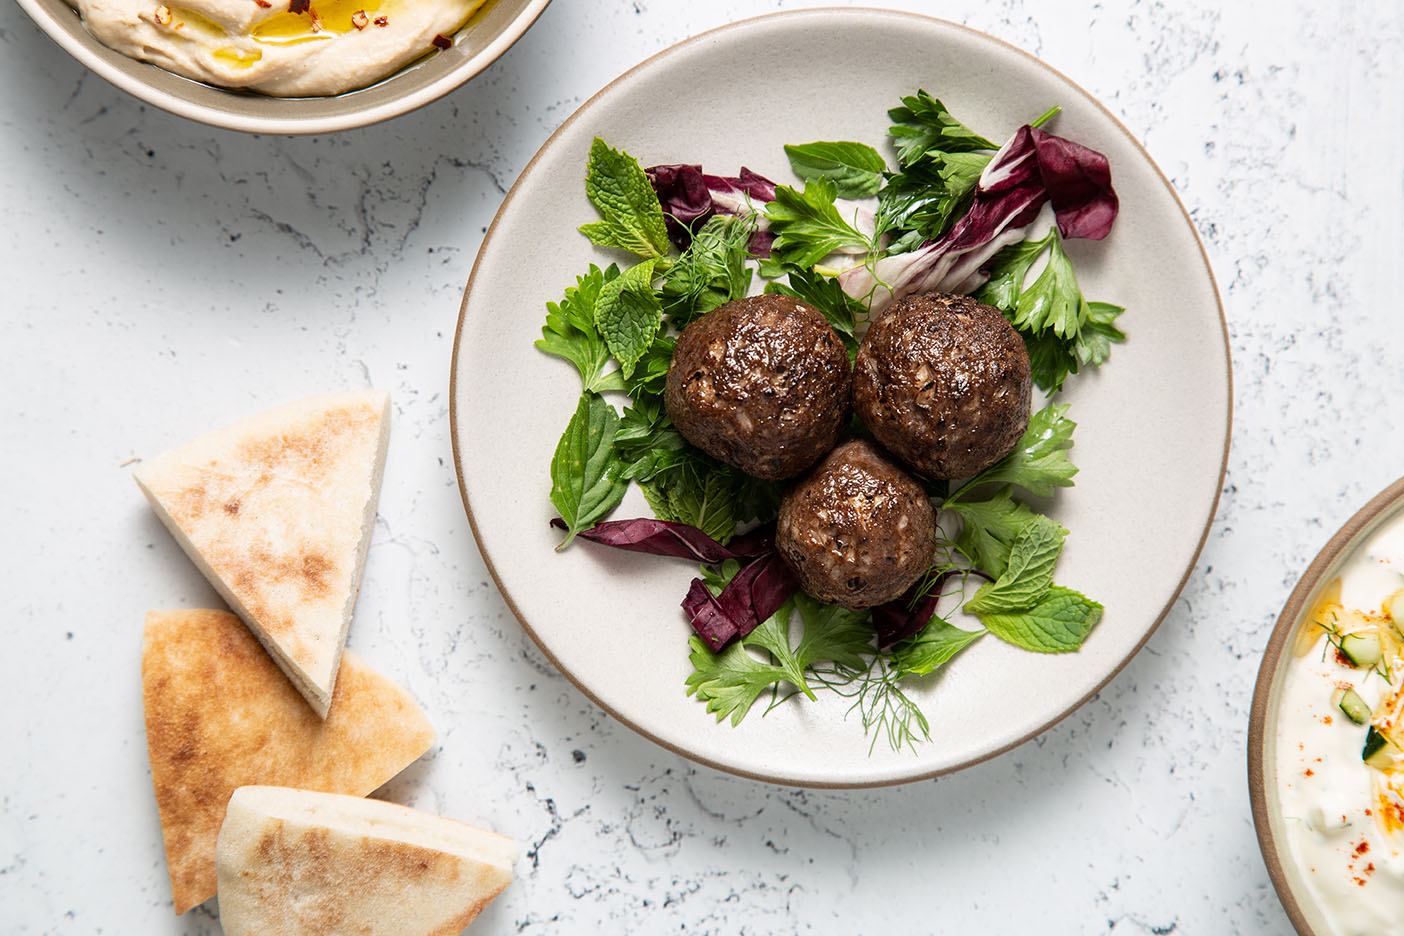 the world's first cell-based beef meatballs